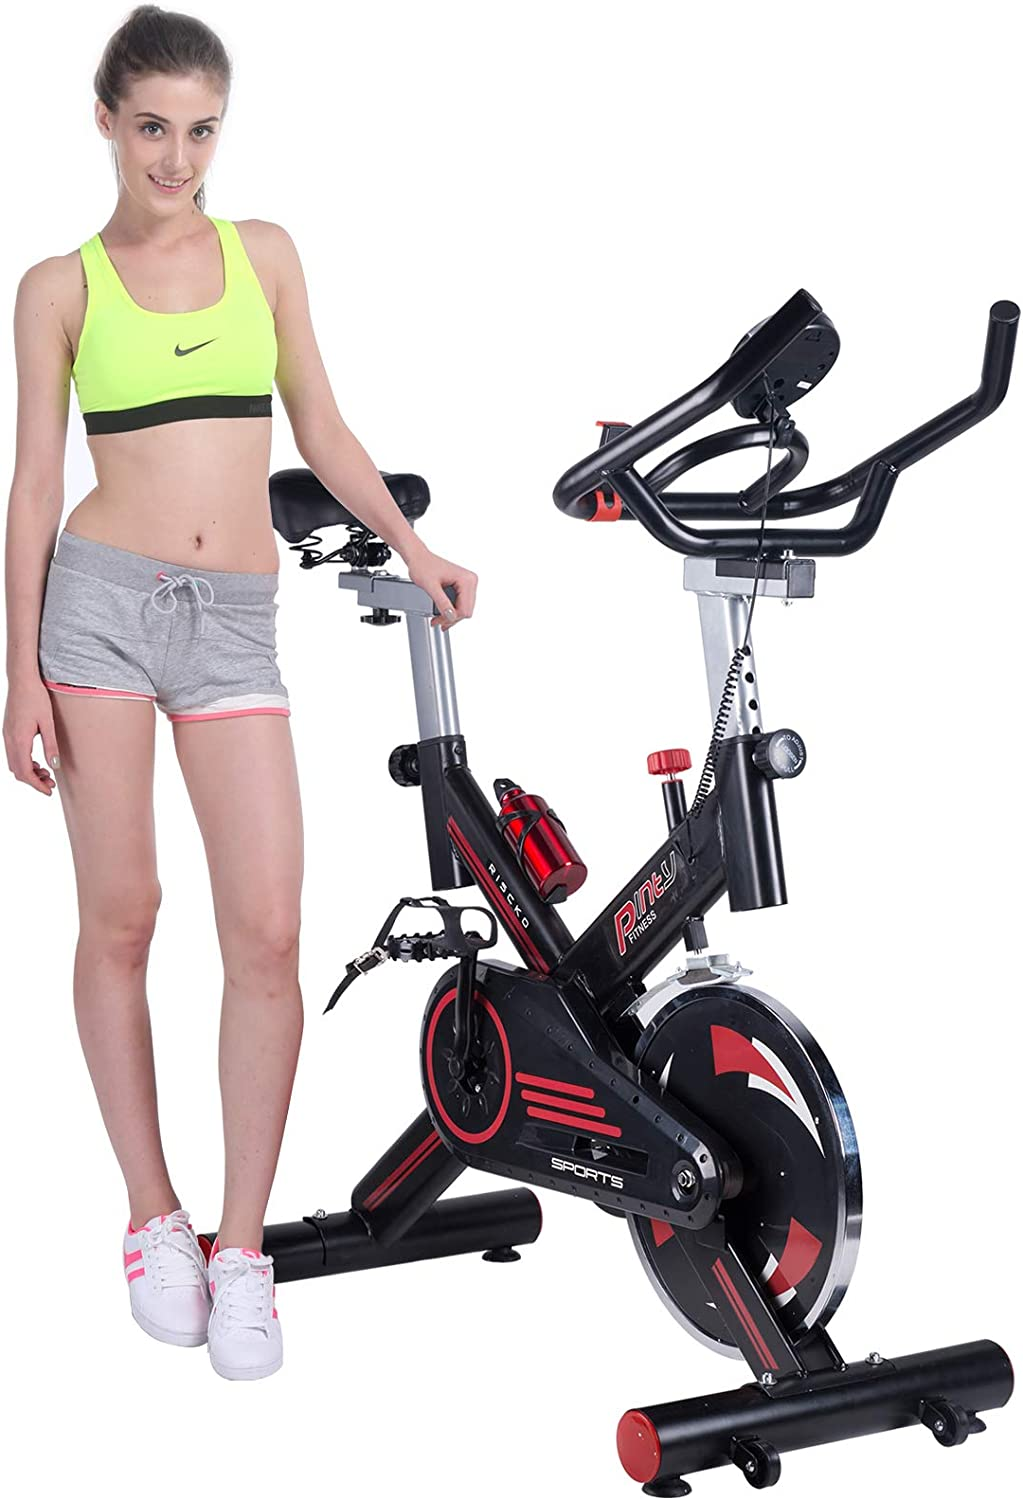 Pinty Indoor Cycling Bike Stationary Trainer Indoor Exercise Bike with Phone Holder for Health Fitness Fully Adjustable, 330lb Capacity